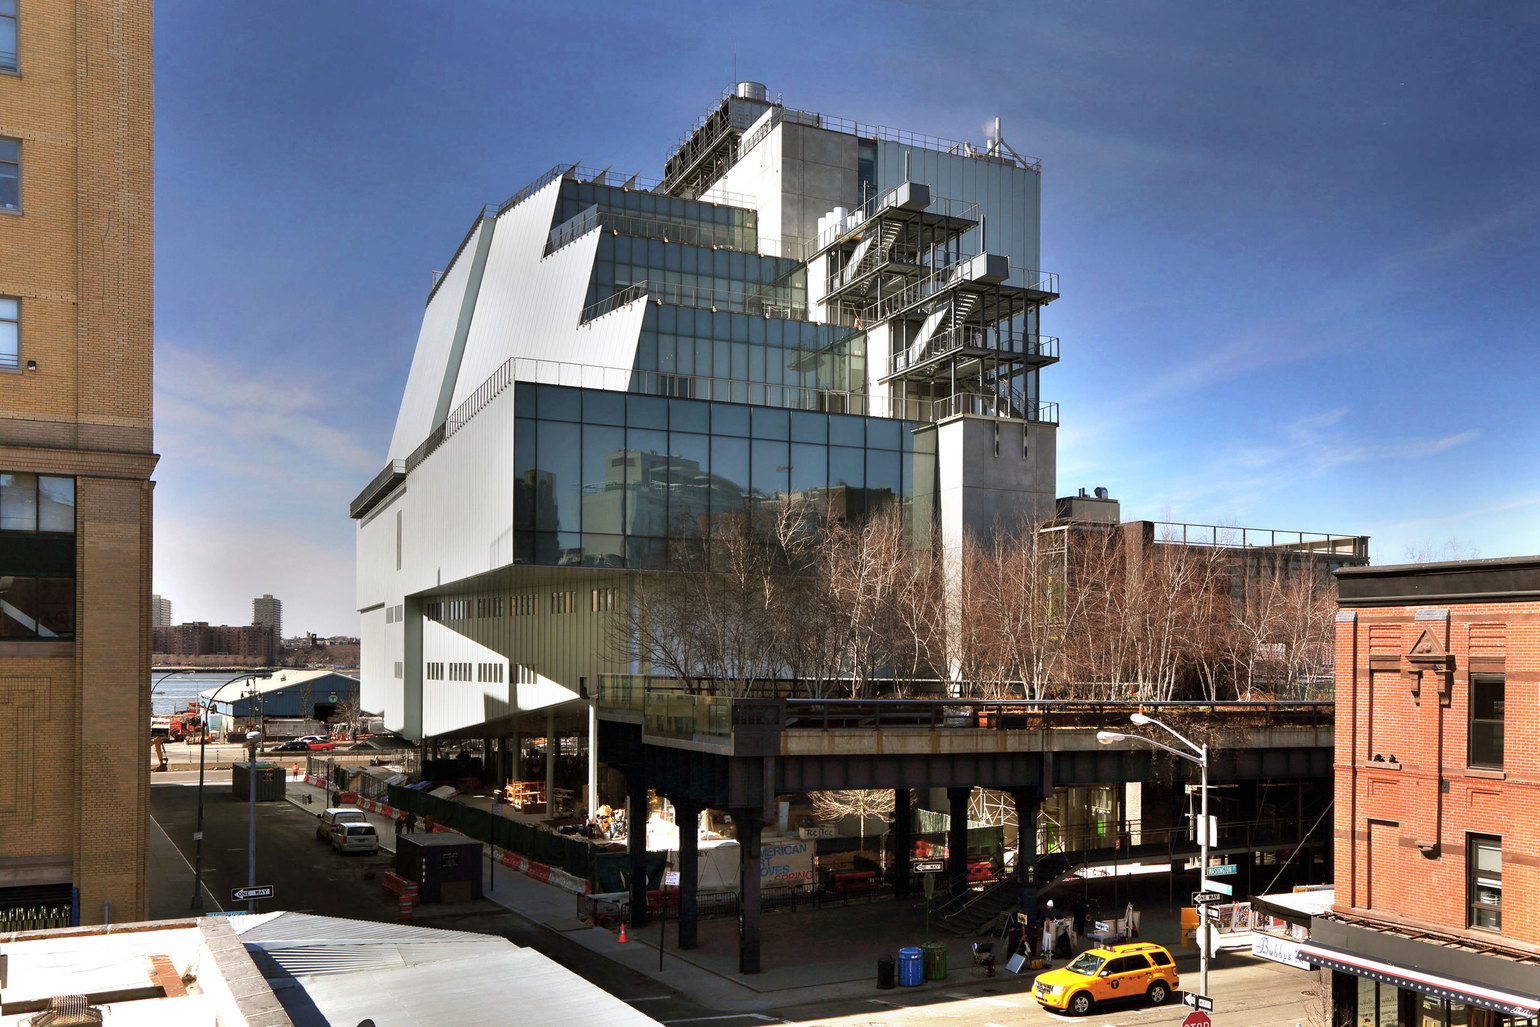 The Whitney Museum of American Art building opened May 1, 2015